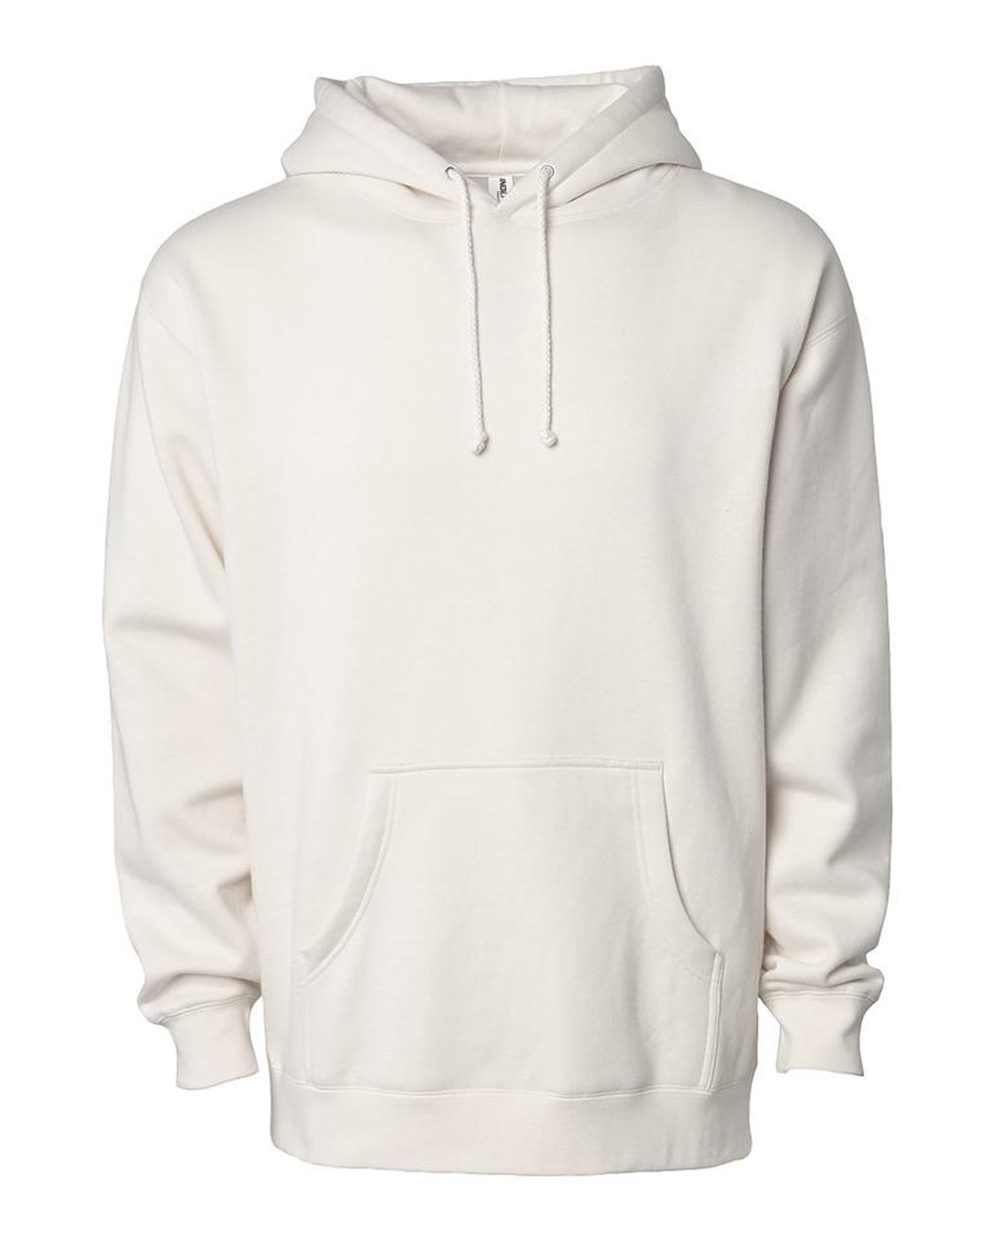 Independent-Trading-Co-Mens-Hooded-Pullover-Sweatshirt-IND4000-up-to-3XL miniature 21